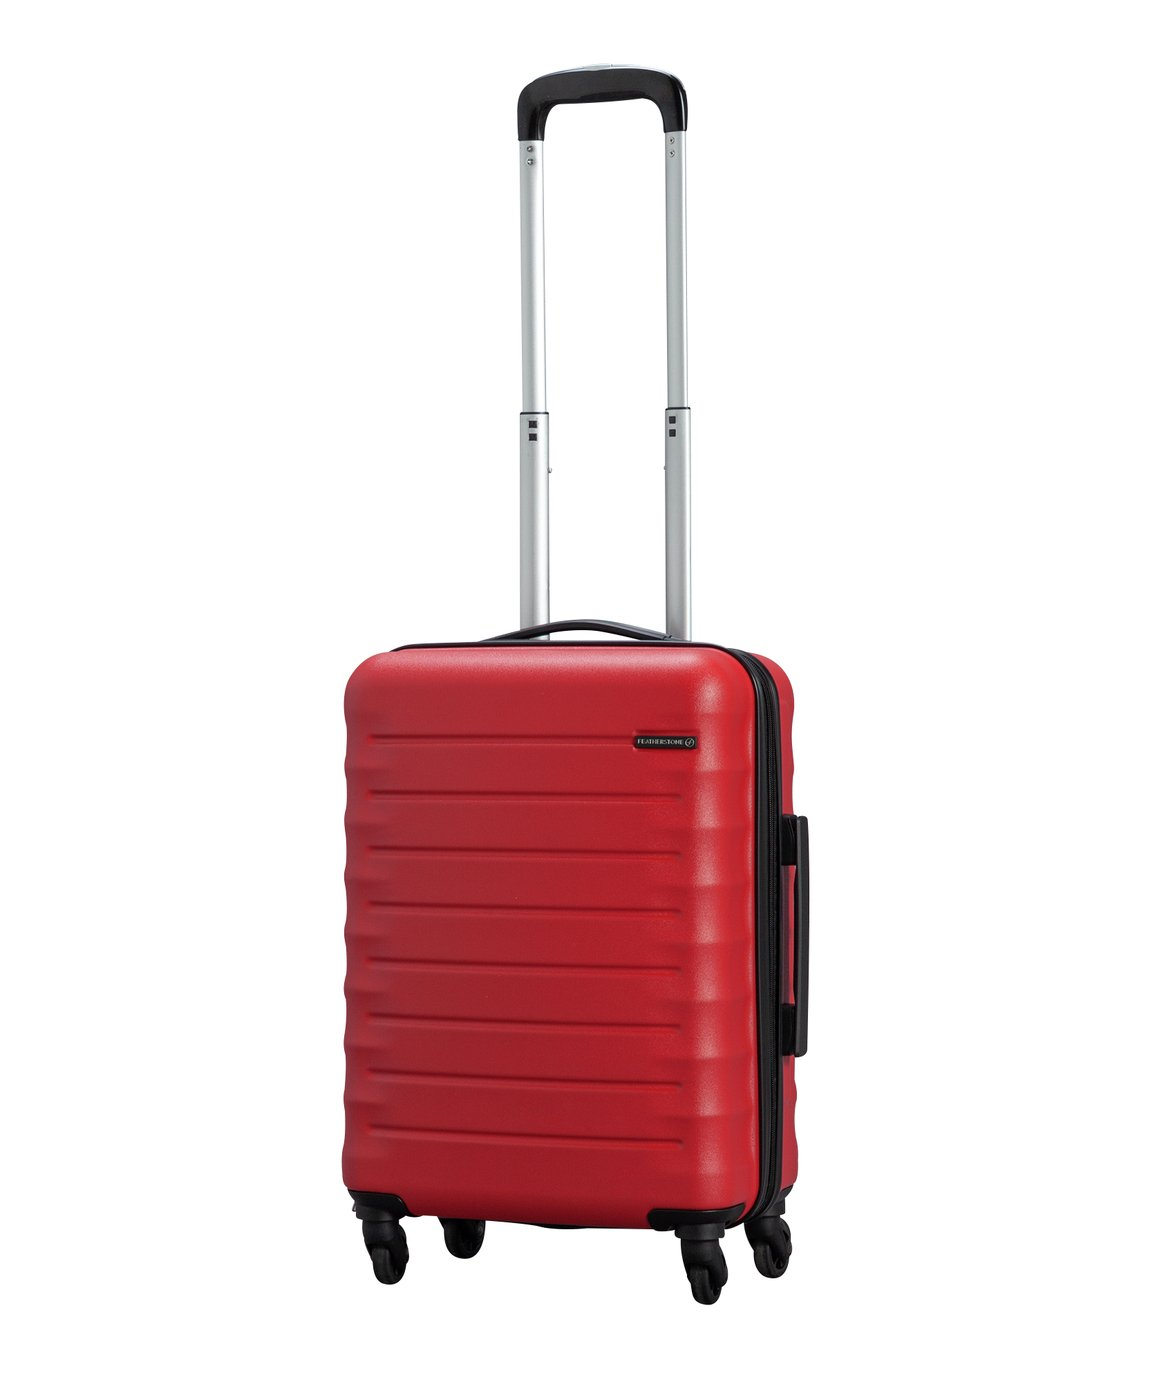 Featherstone 4 Wheel Hard Cabin-Sized Suitcase - Red